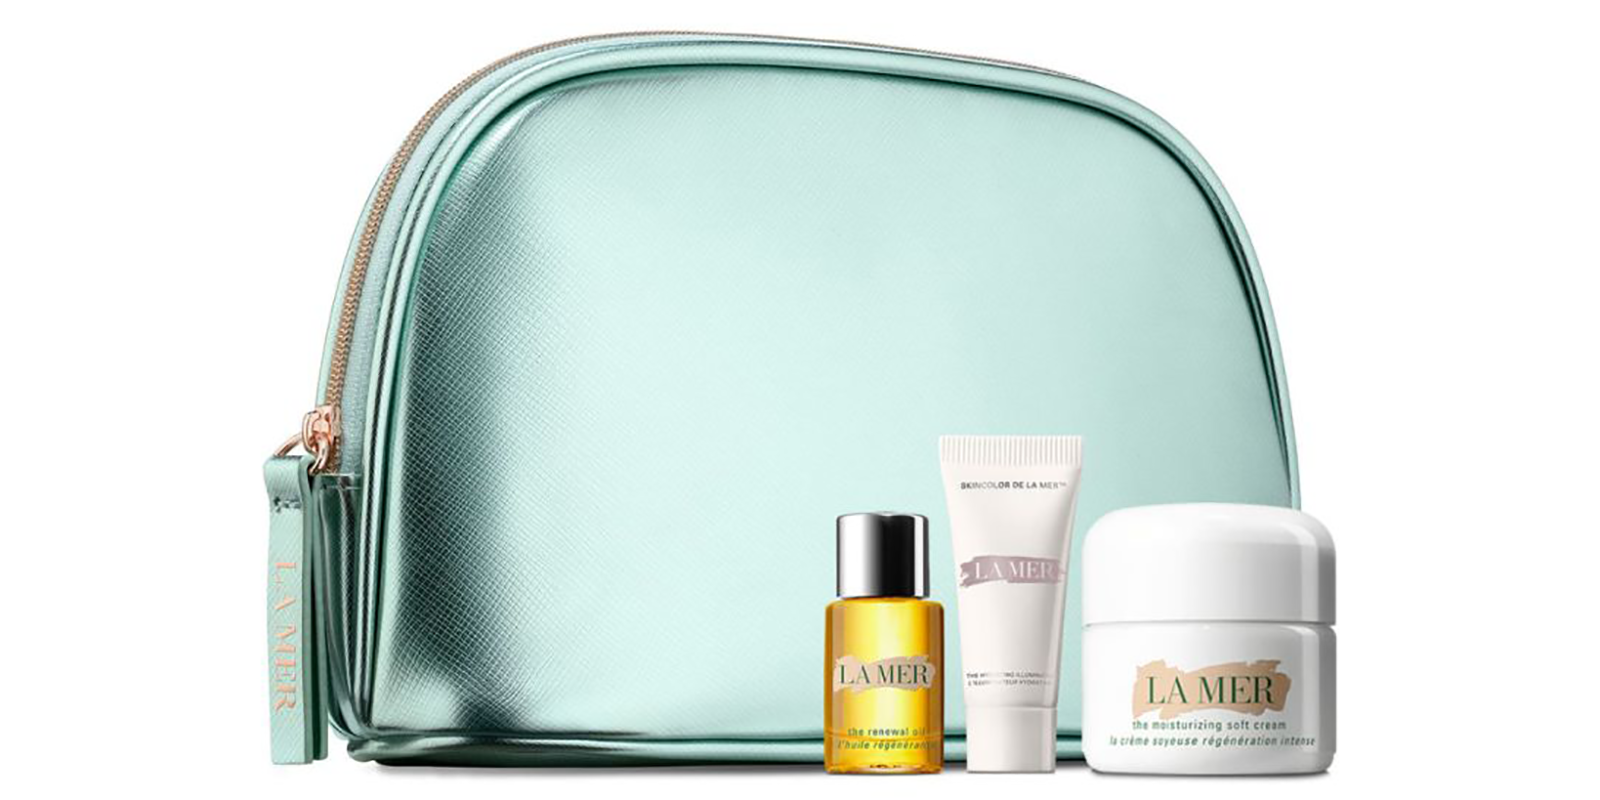 Shop La Mer bestsellers for under $100